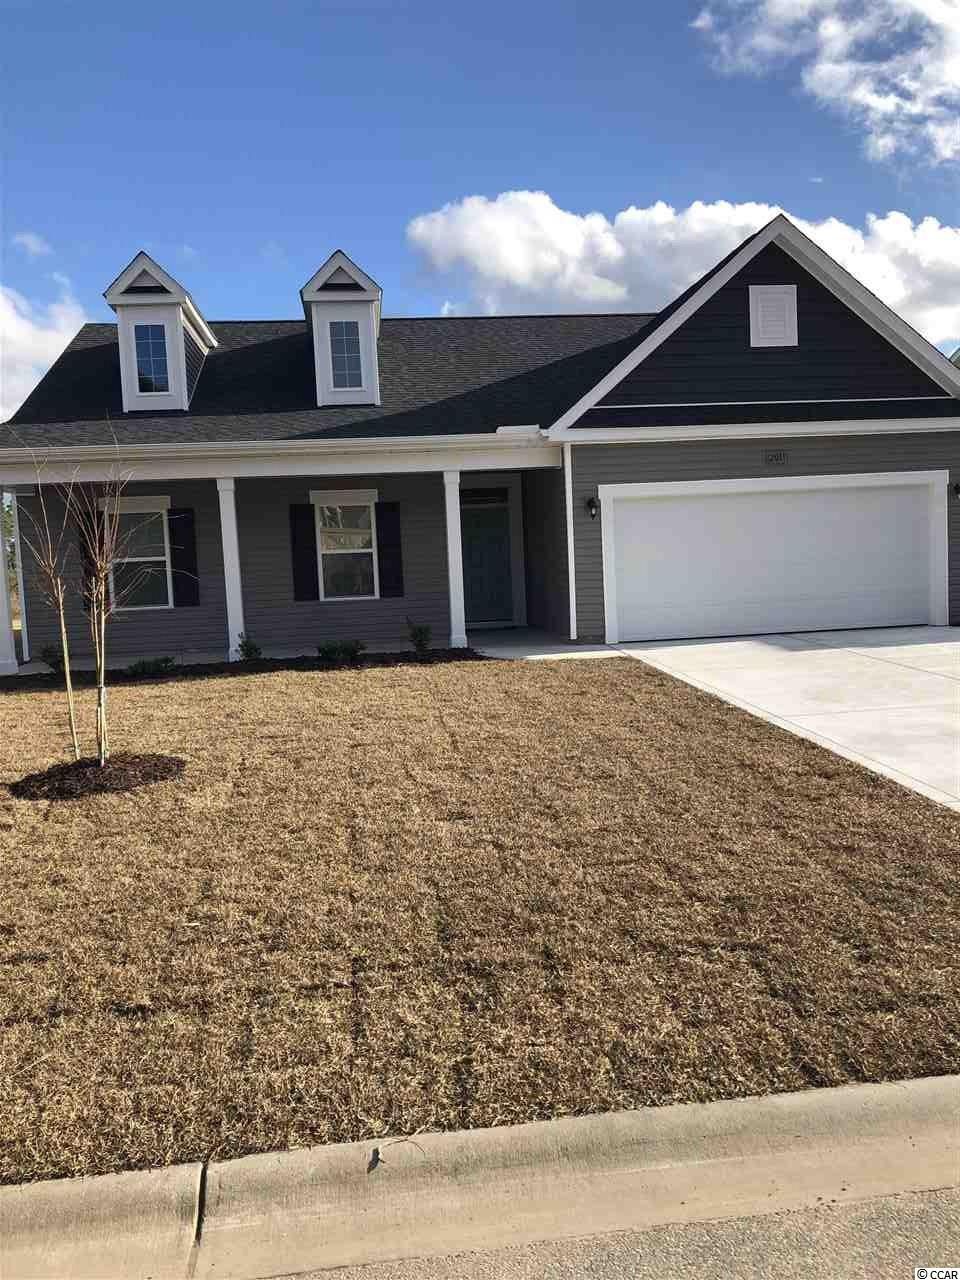 Very Popular FRISCO plan with 3 bedrooms and 2 baths. wide open floorplan, 7 foot center island in kitchen and granite countertops